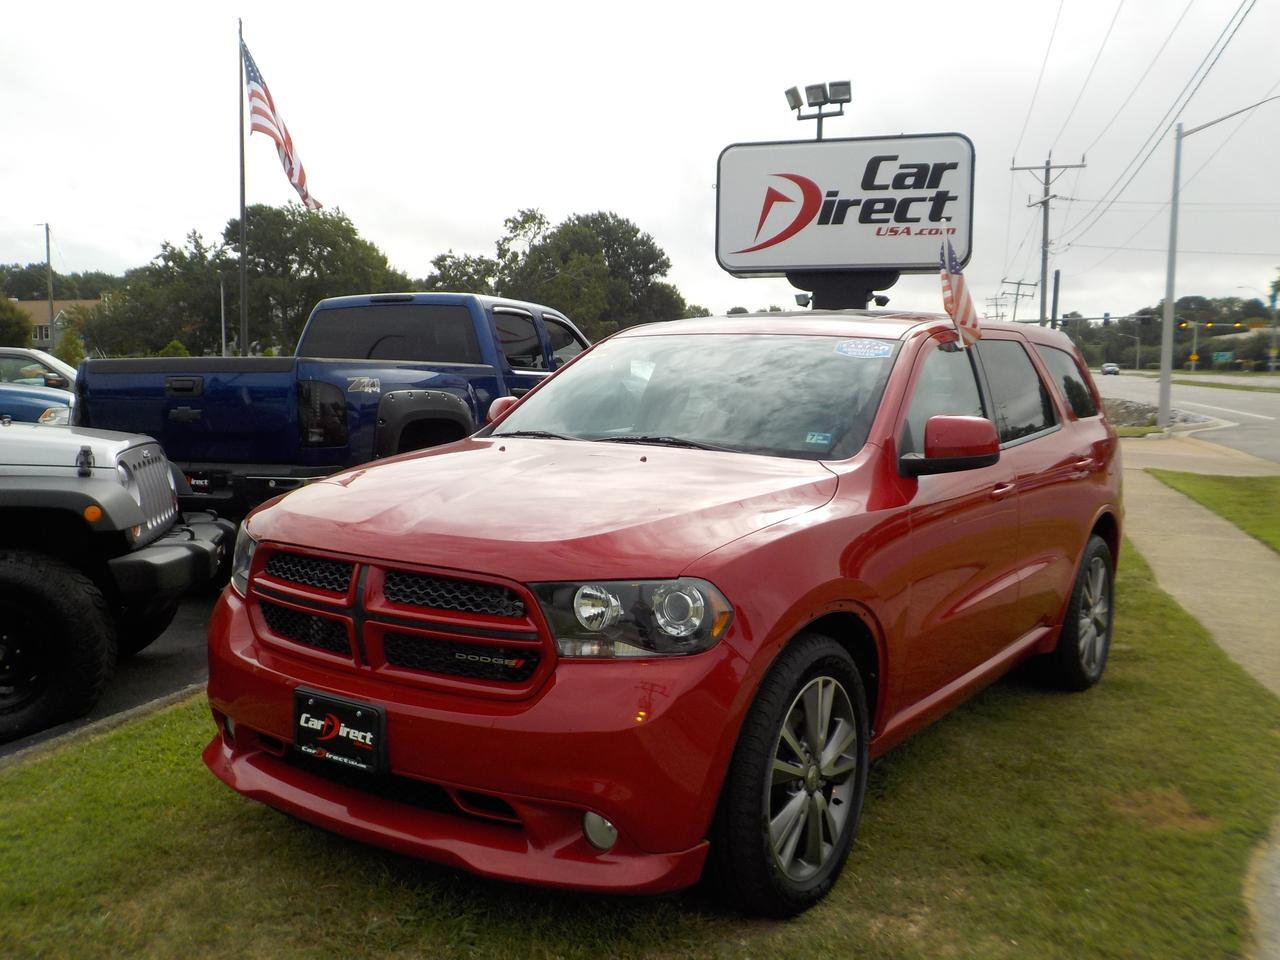 2013 DODGE DURANGO R/T, AWD, HEMI V8, THIRD ROW, UCONNECT, BACK UP CAMERA,  LOW MILES, IMMACULATE WITH WARRANTY!!!